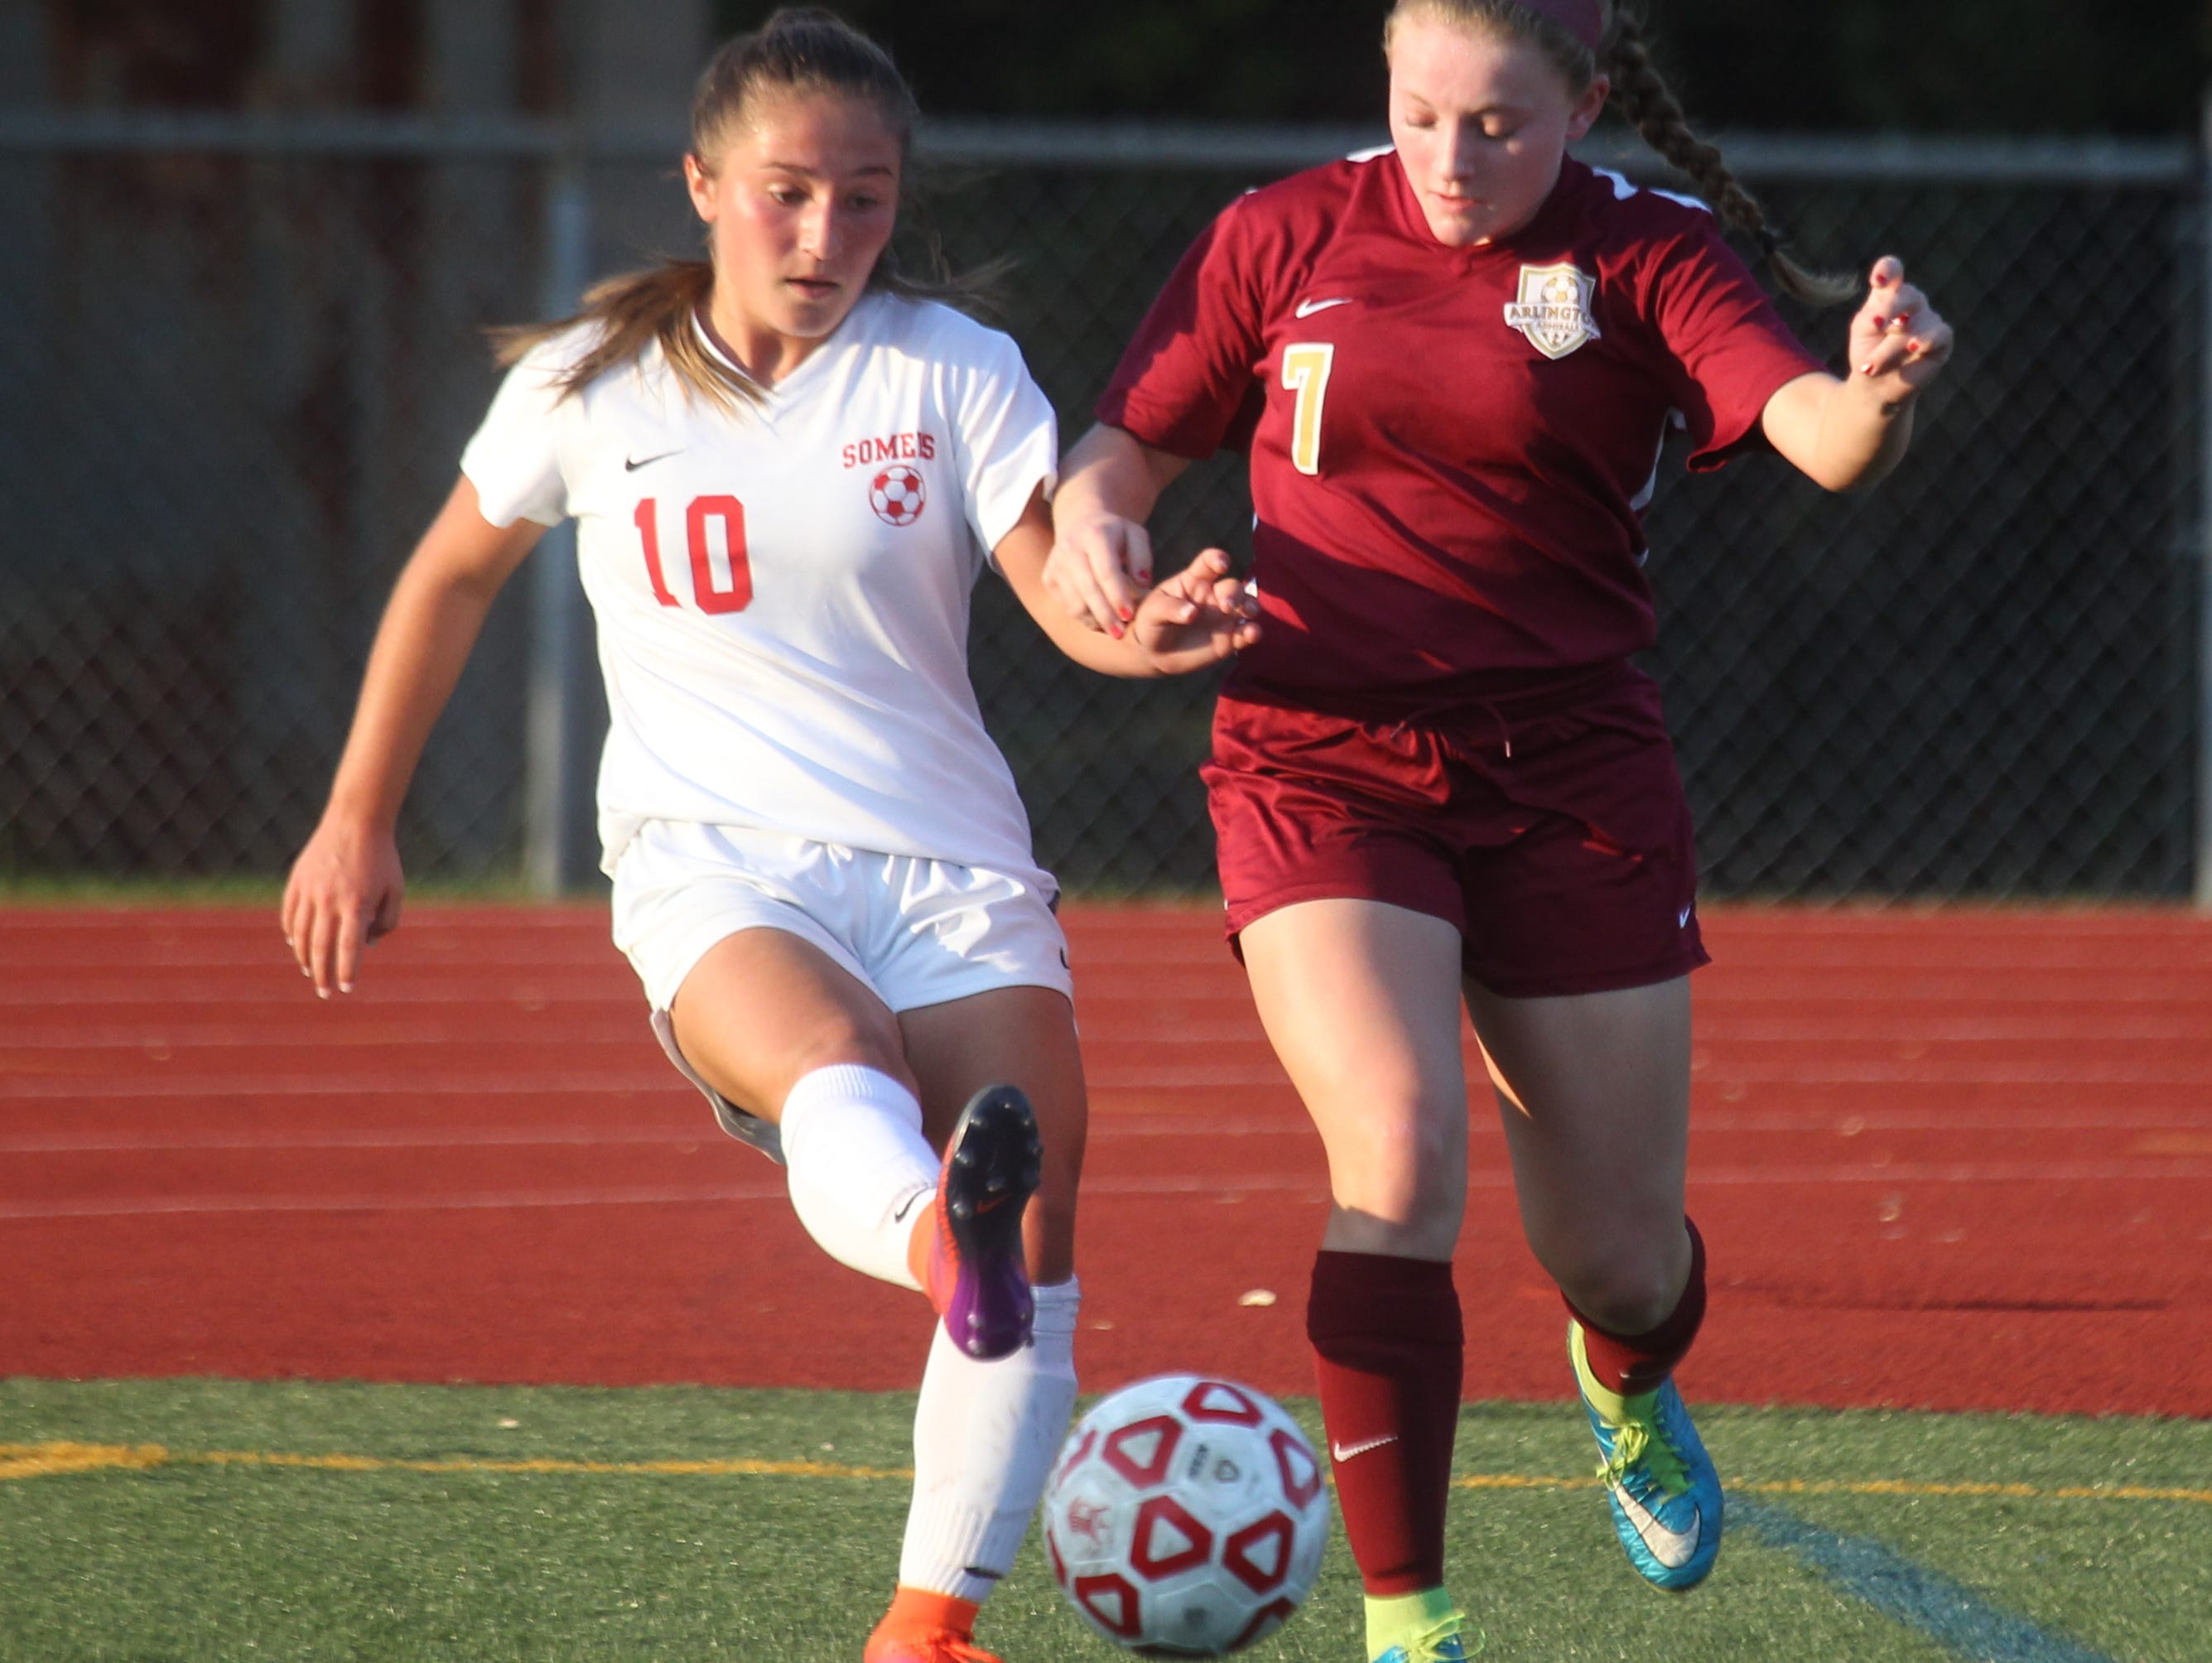 Somers' Jessica Rodriguez, left, is pressured by Arlington's Allie Coon during their game at Somers Oct. 17, 2016. Arlington won 2-1 in overtime.